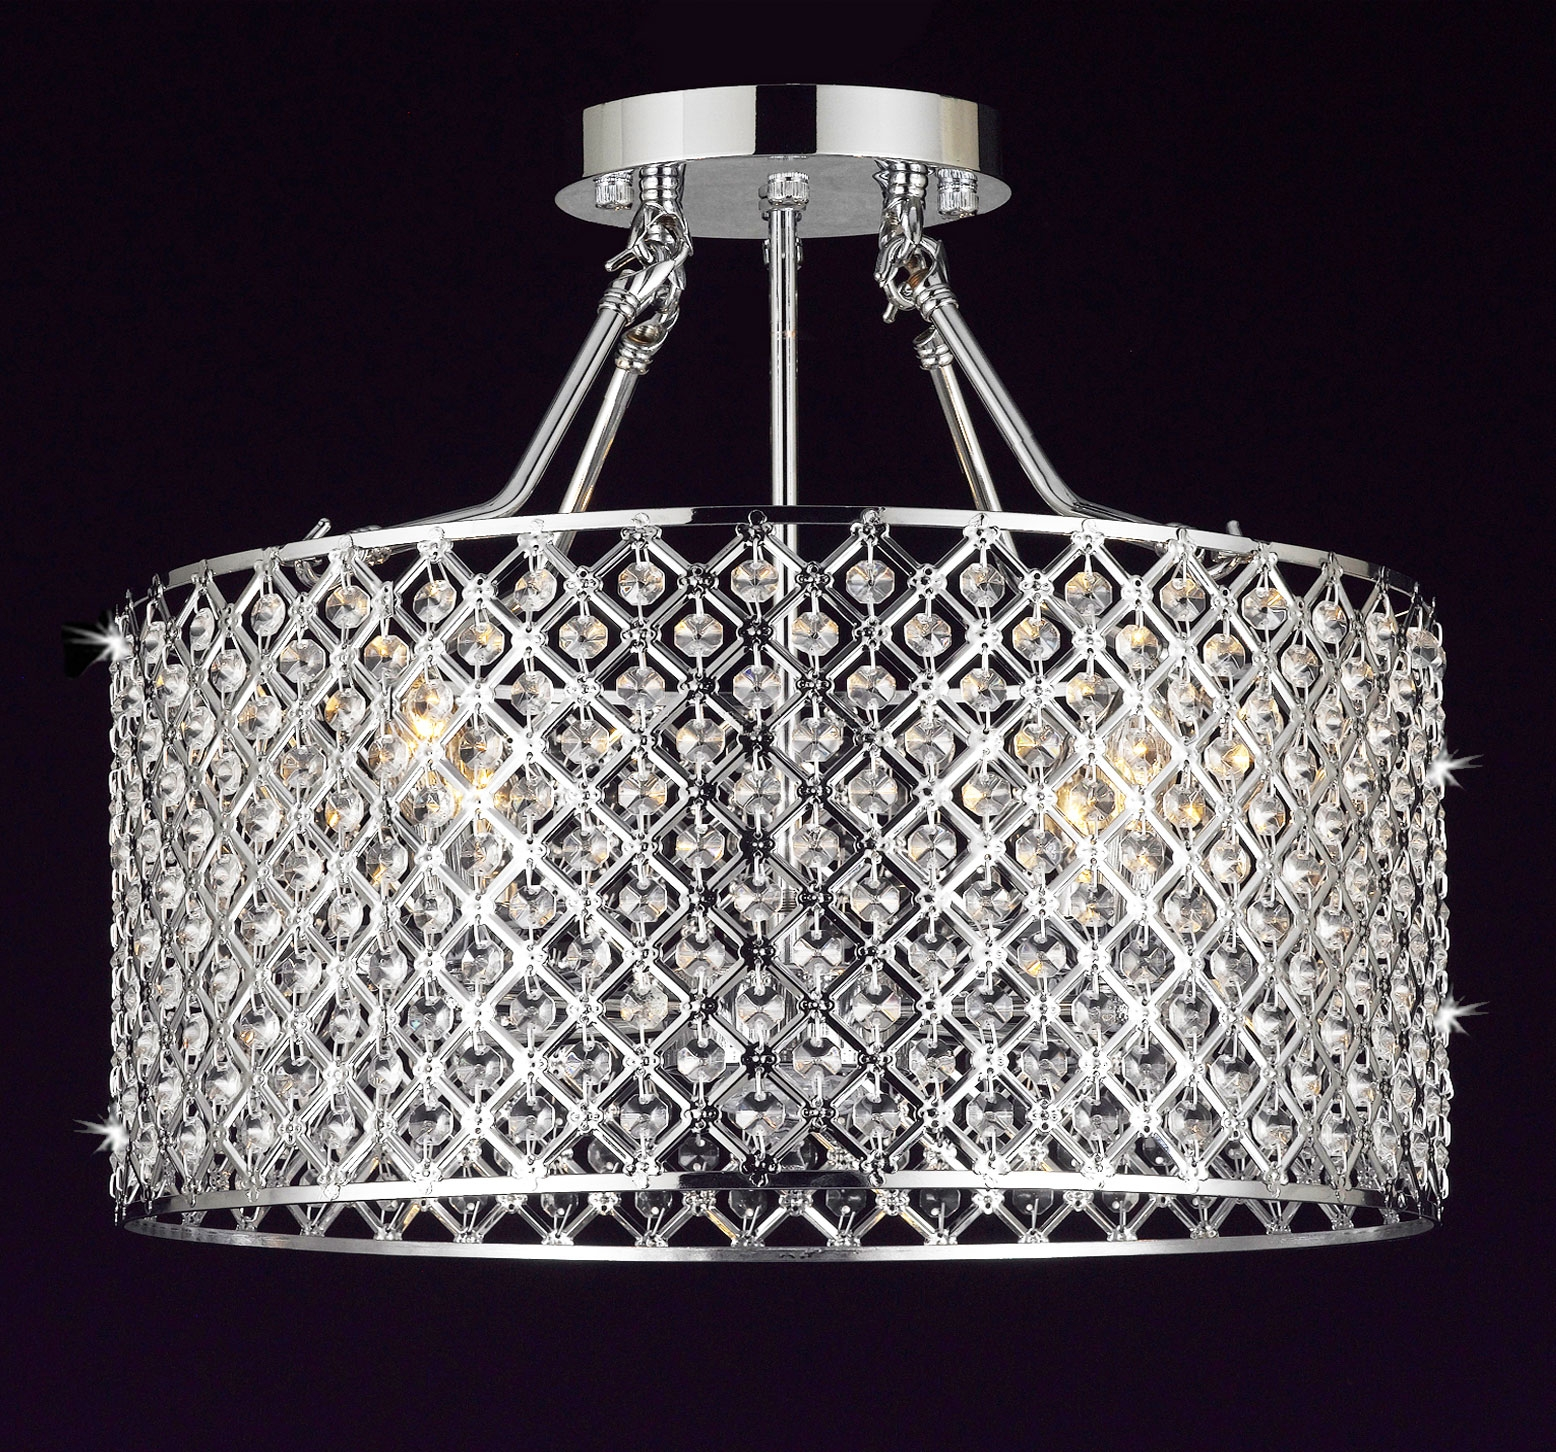 G7 B12white21304 Gallery Chandeliers Flushmount 4 Light Chrome With Regard To 4Light Chrome Crystal Chandeliers (View 12 of 25)